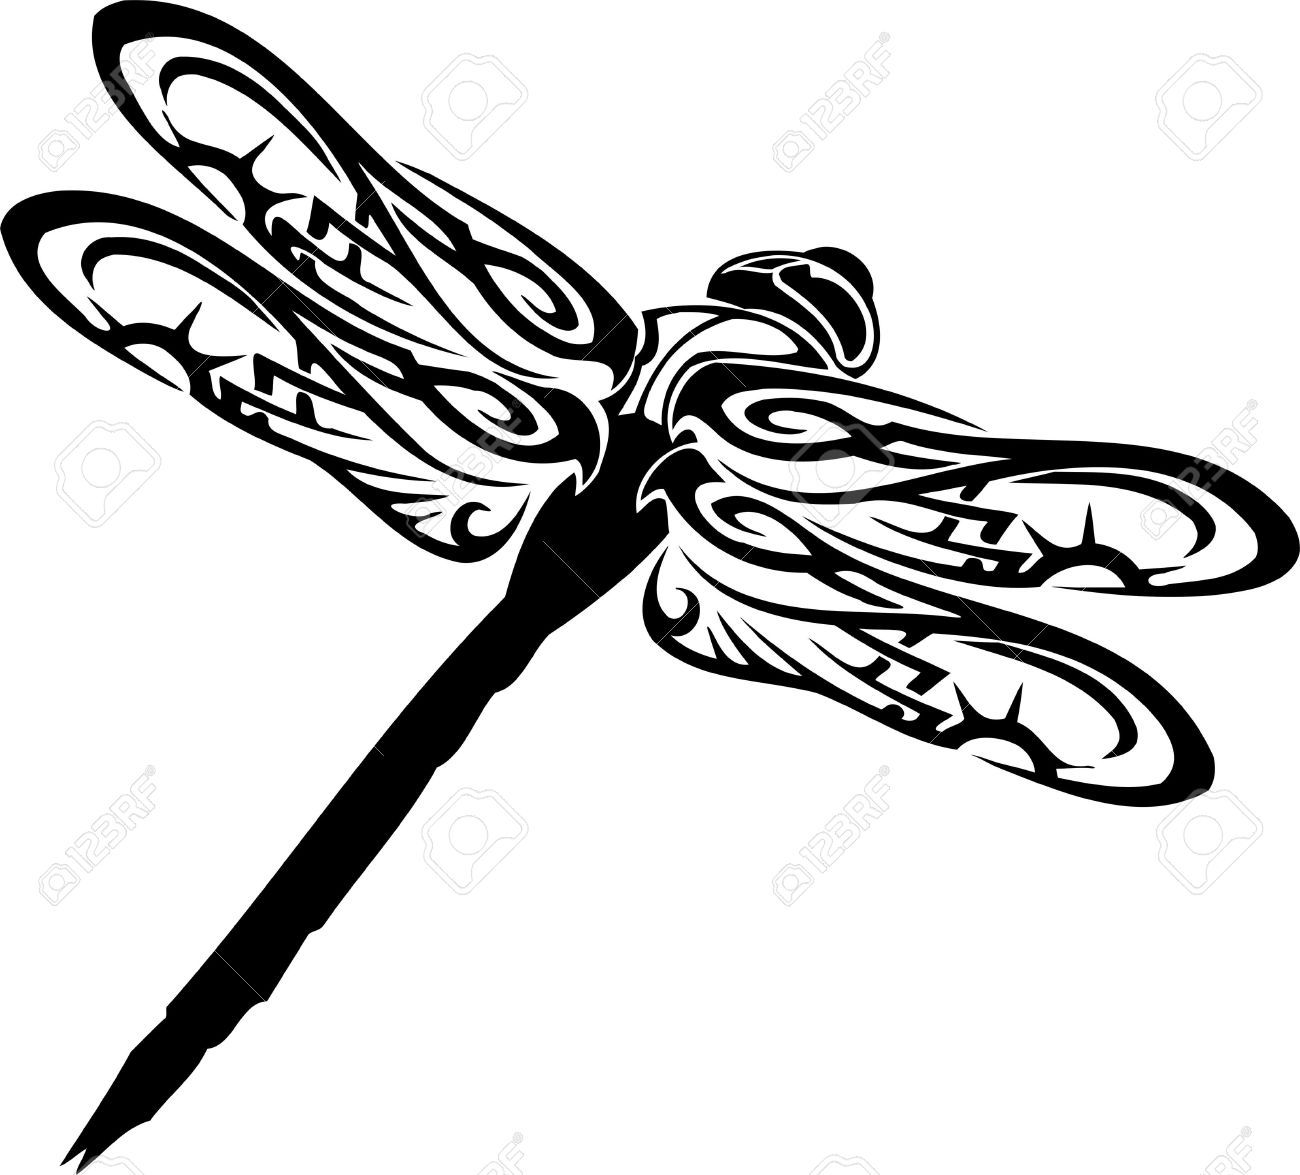 dragonfly cliparts stock vector and royalty free dragonfly rh pinterest co uk dragonfly vector free download dragonfly vector art